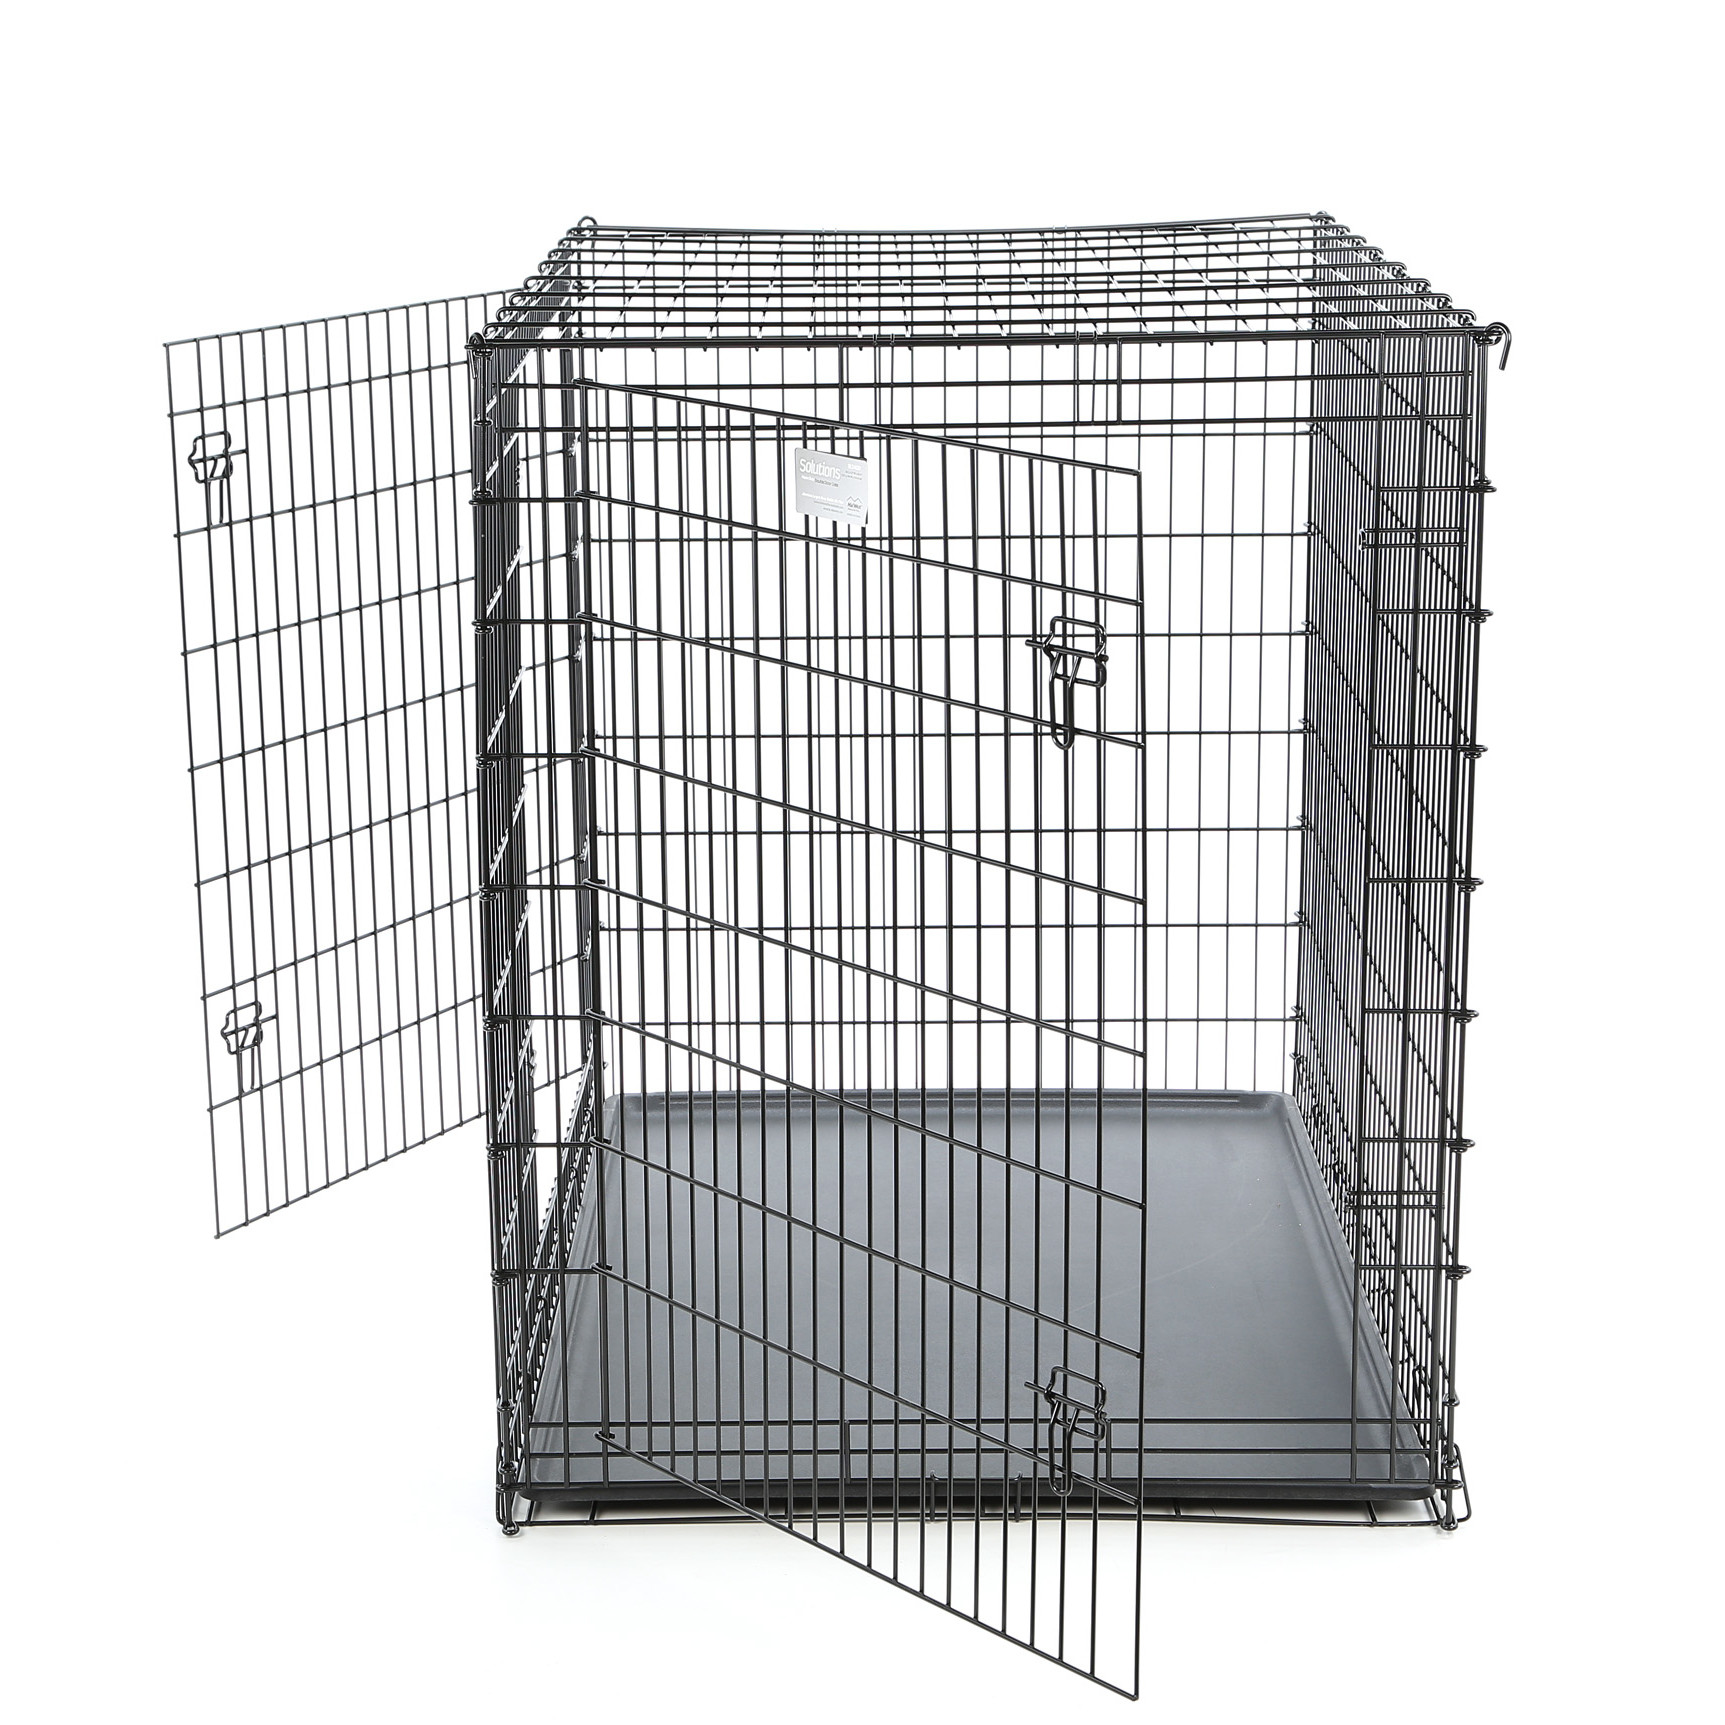 Tips: Midwest Icrate | Midwest Kennels | Midwest Dog Crates